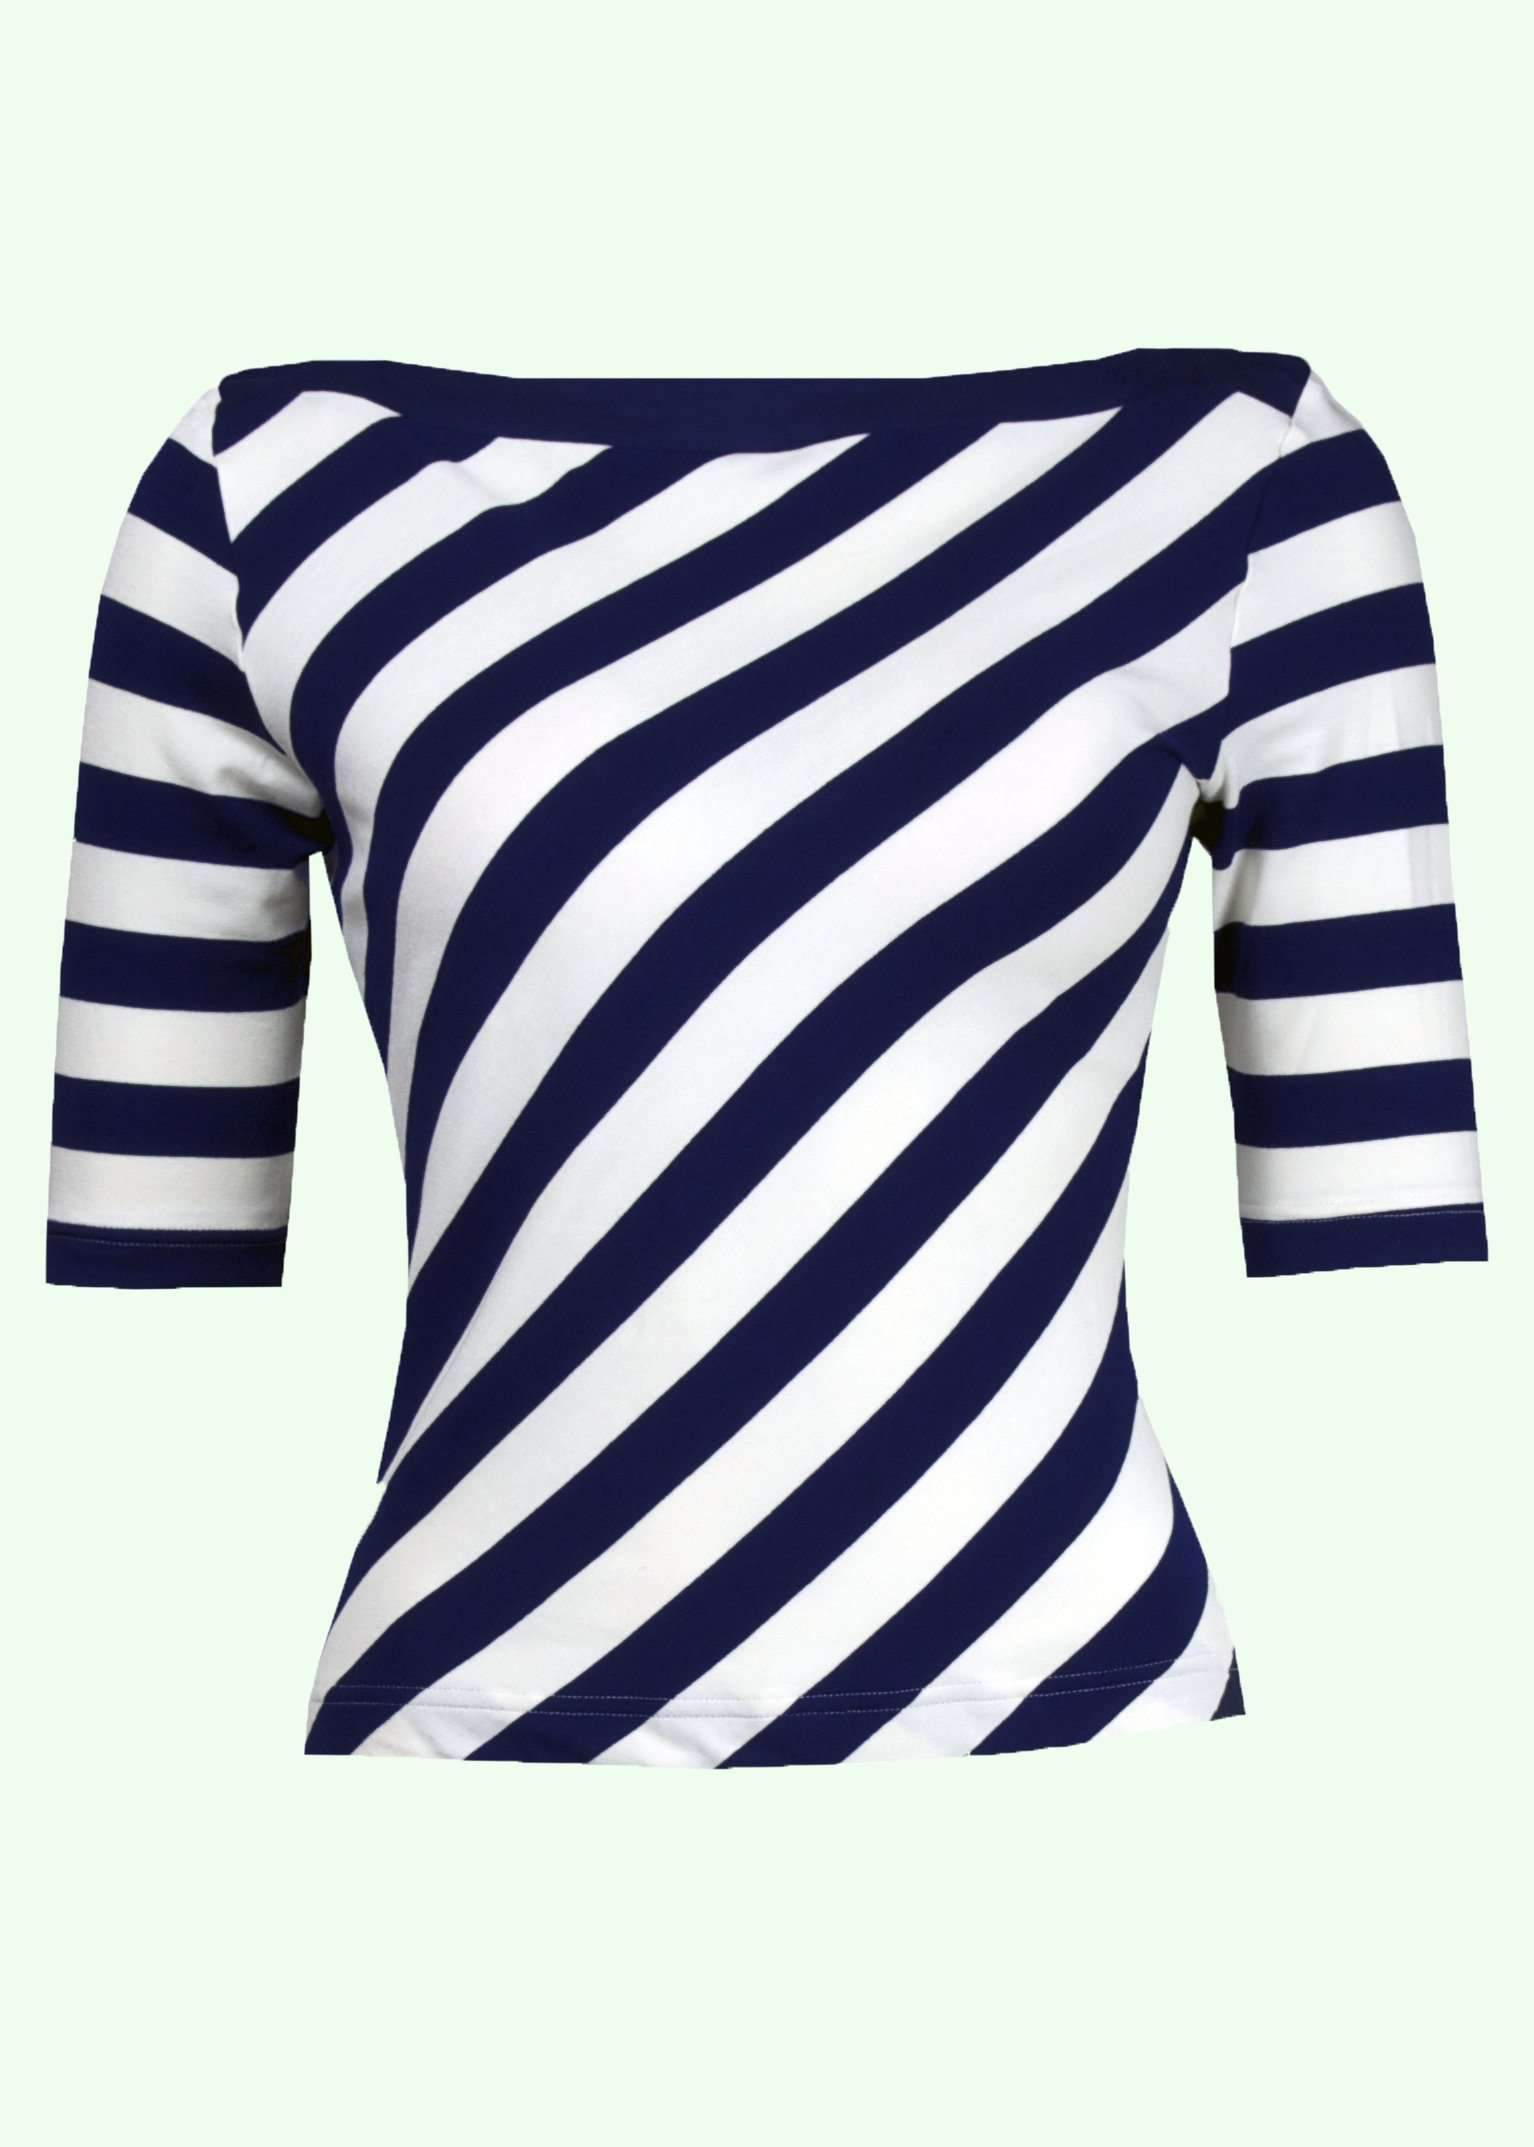 Vintage style top with diagonal stripes